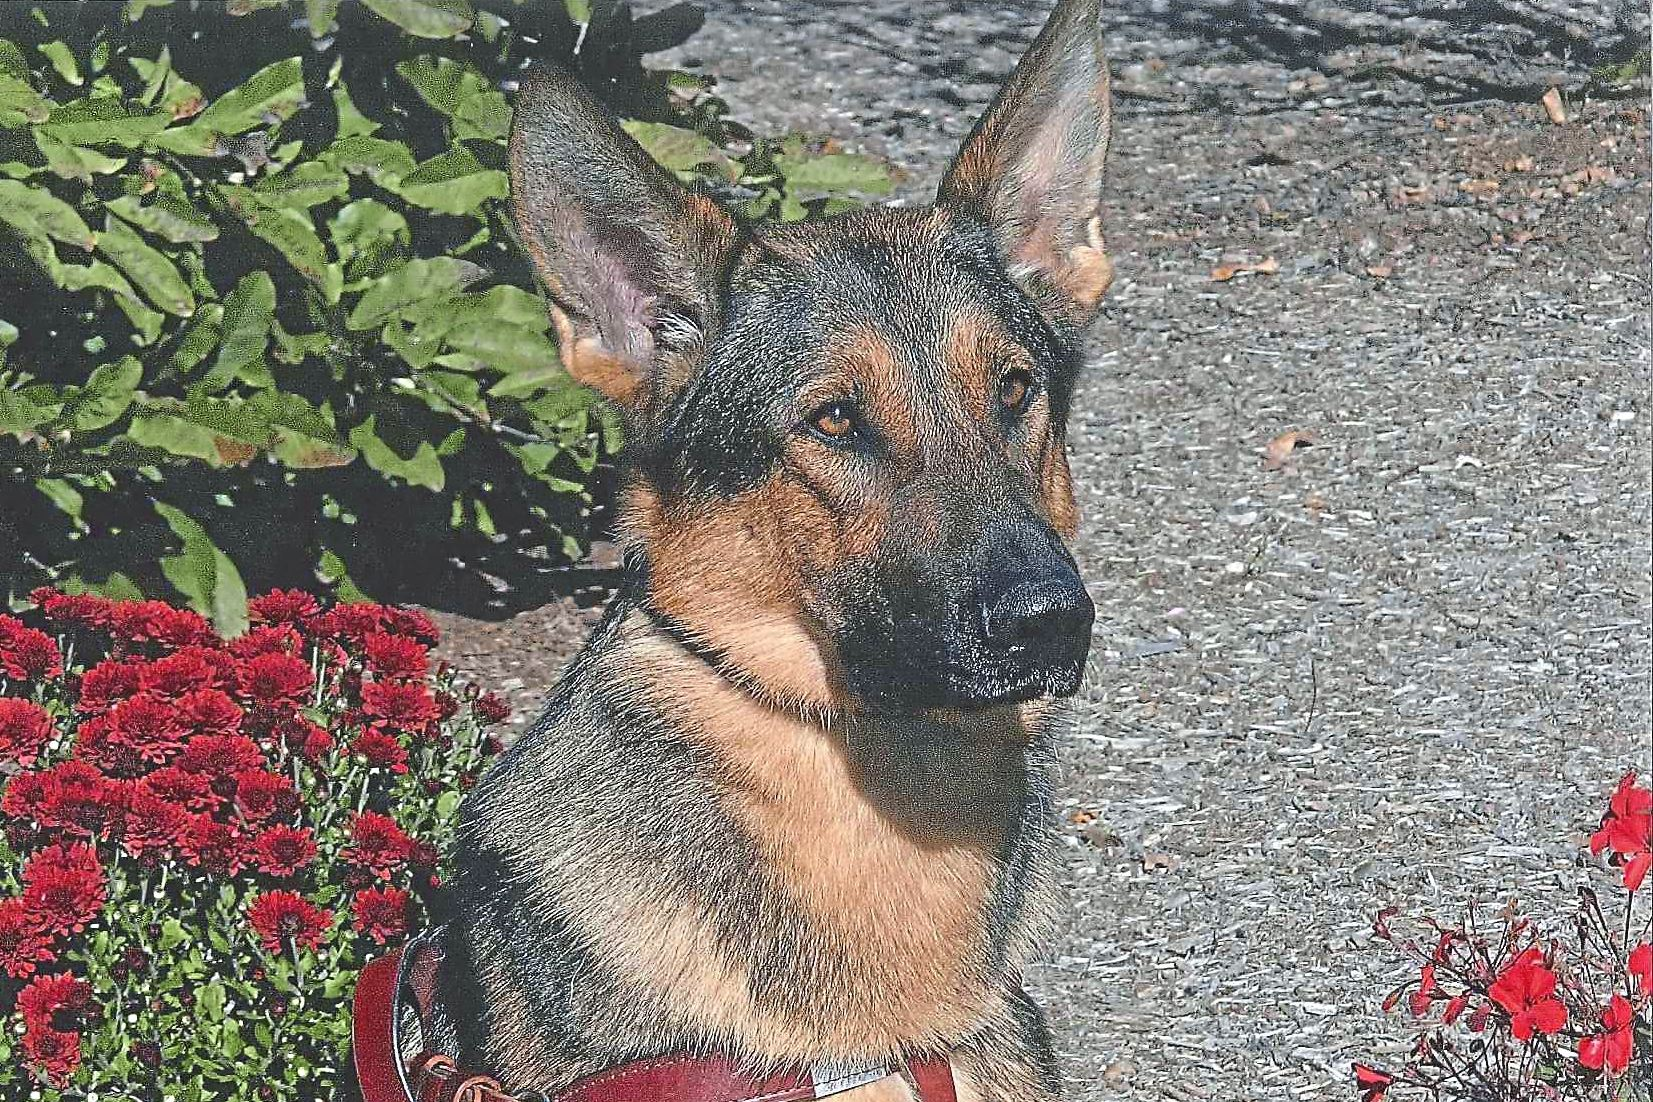 HeroDog0812_Pierce-4 Pierce, one of the 2017 American Humane Hero Dog Awards category winners. Of these one will be named the American Hero Dog of the year at American Humane's Sept. 16 gala awards in Hollywood. The event will be televised nationwide on Hallmark Channel on October 26